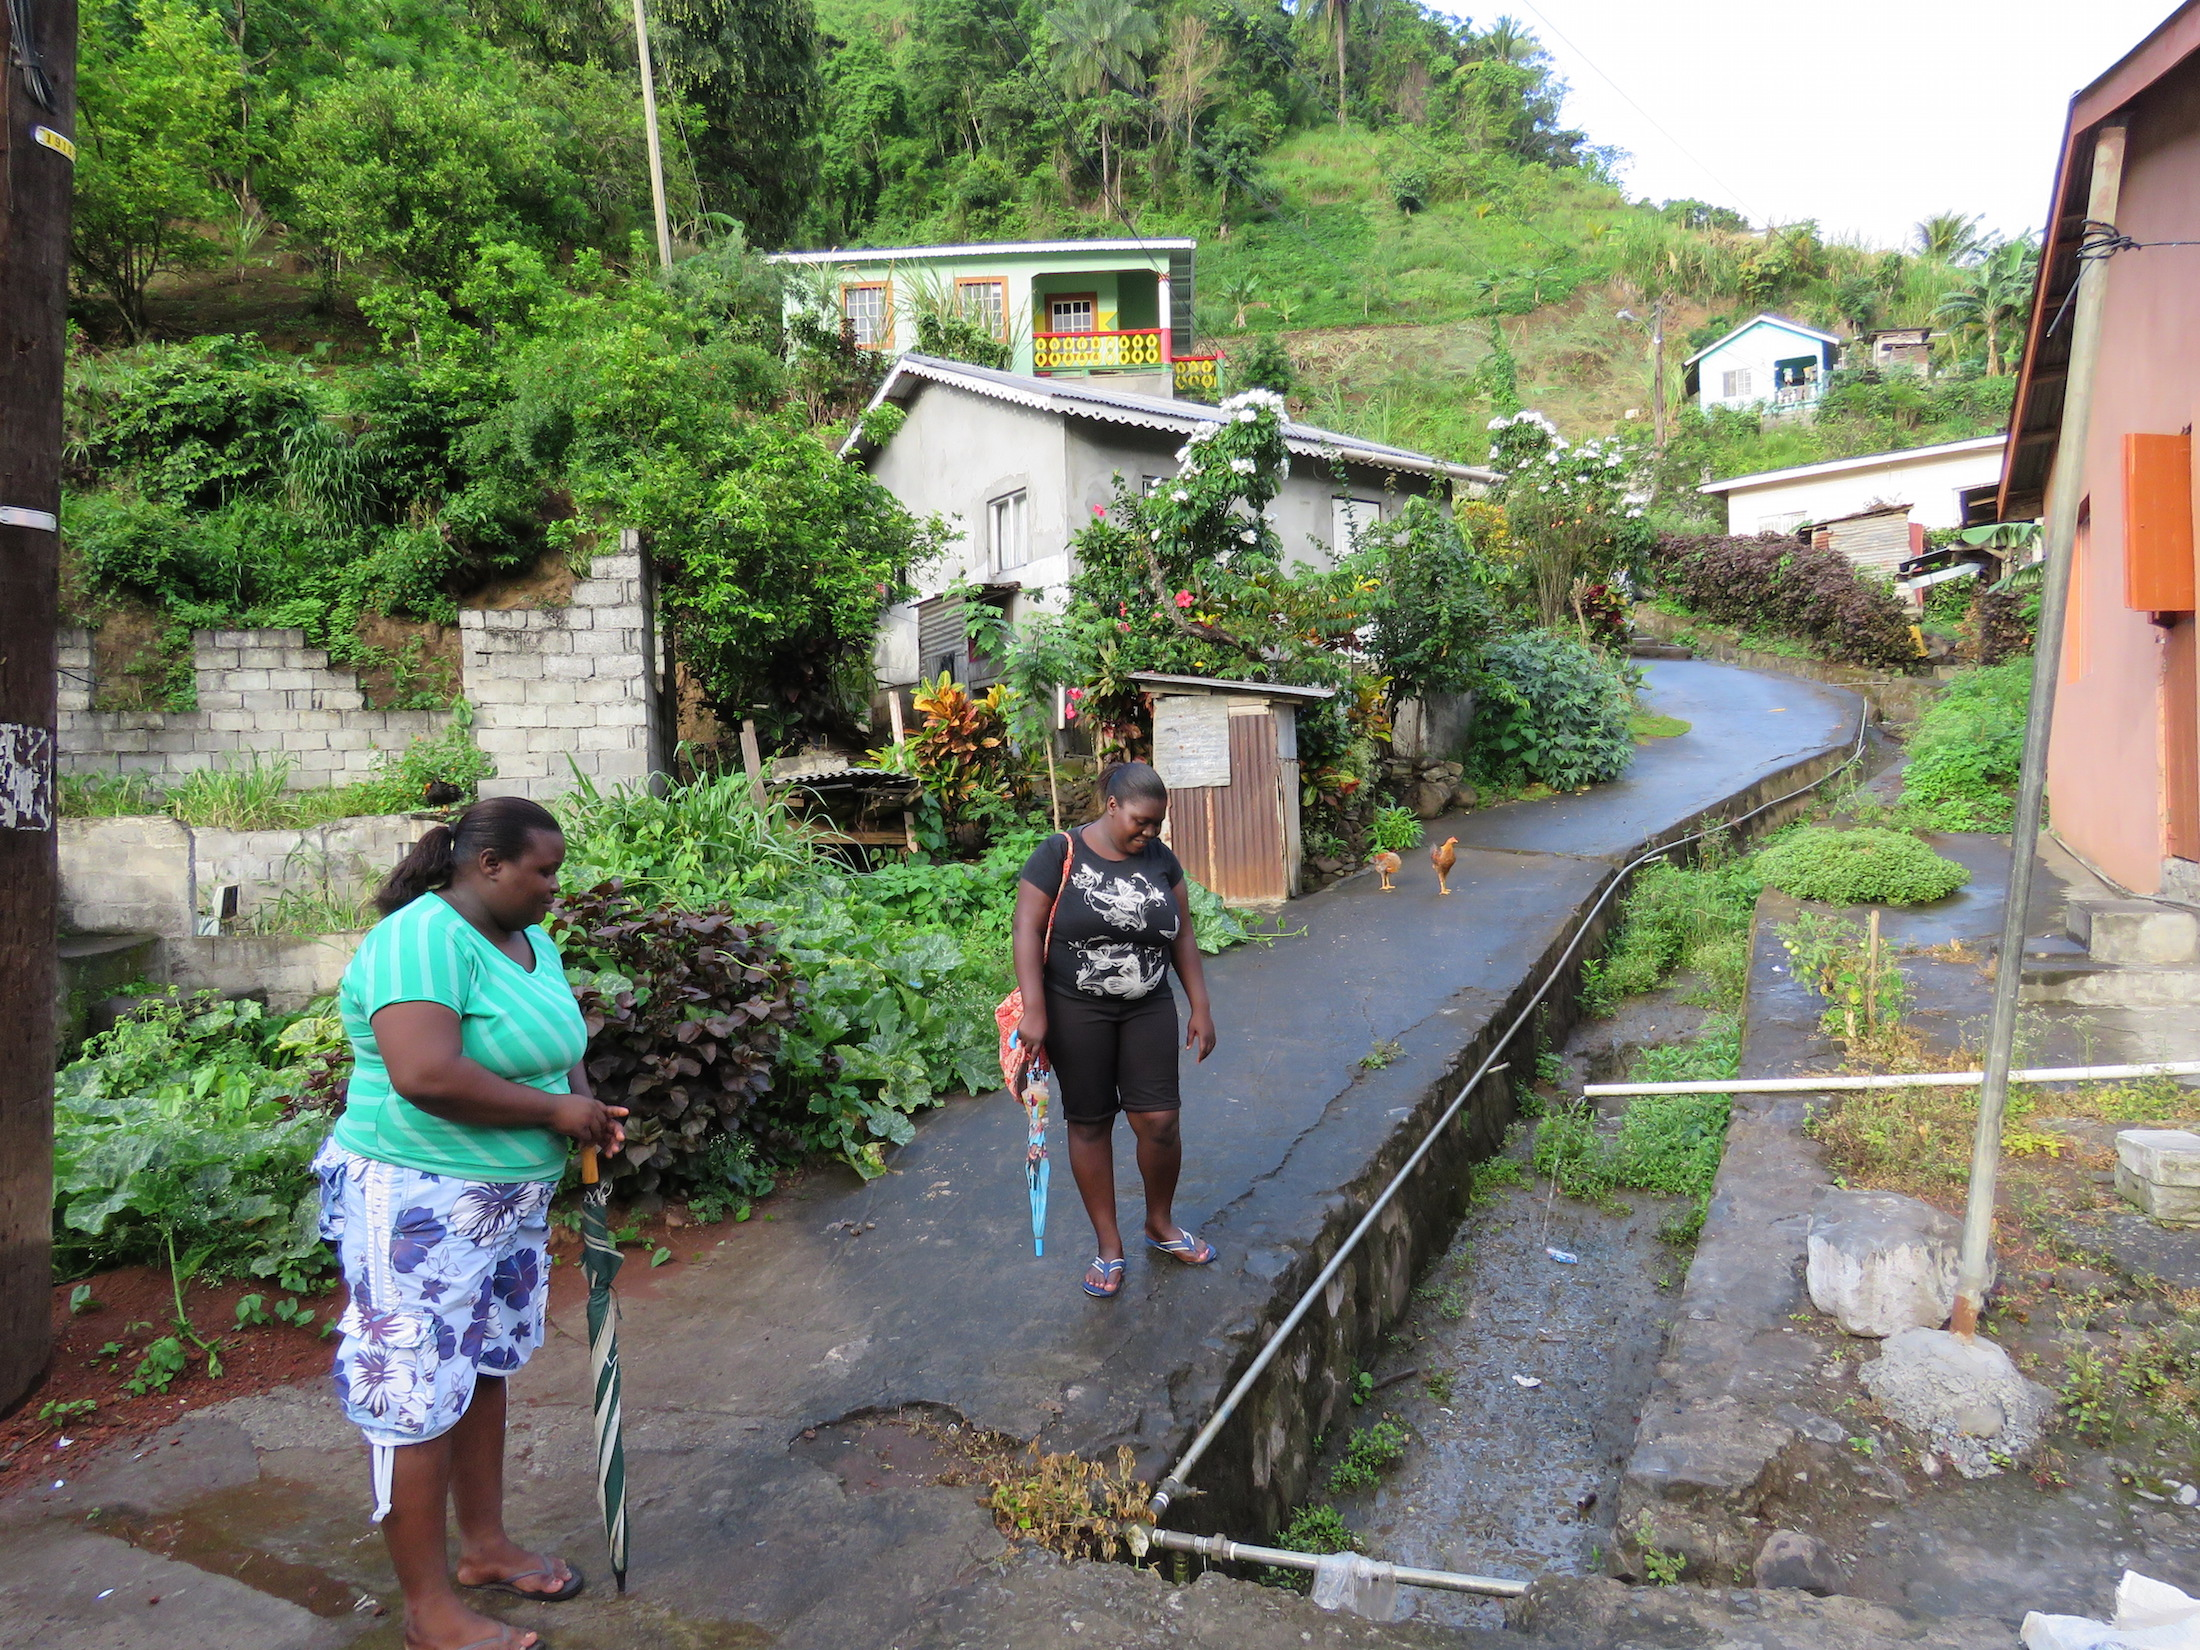 Residents point out the drainage system, which was clogged during the floods.